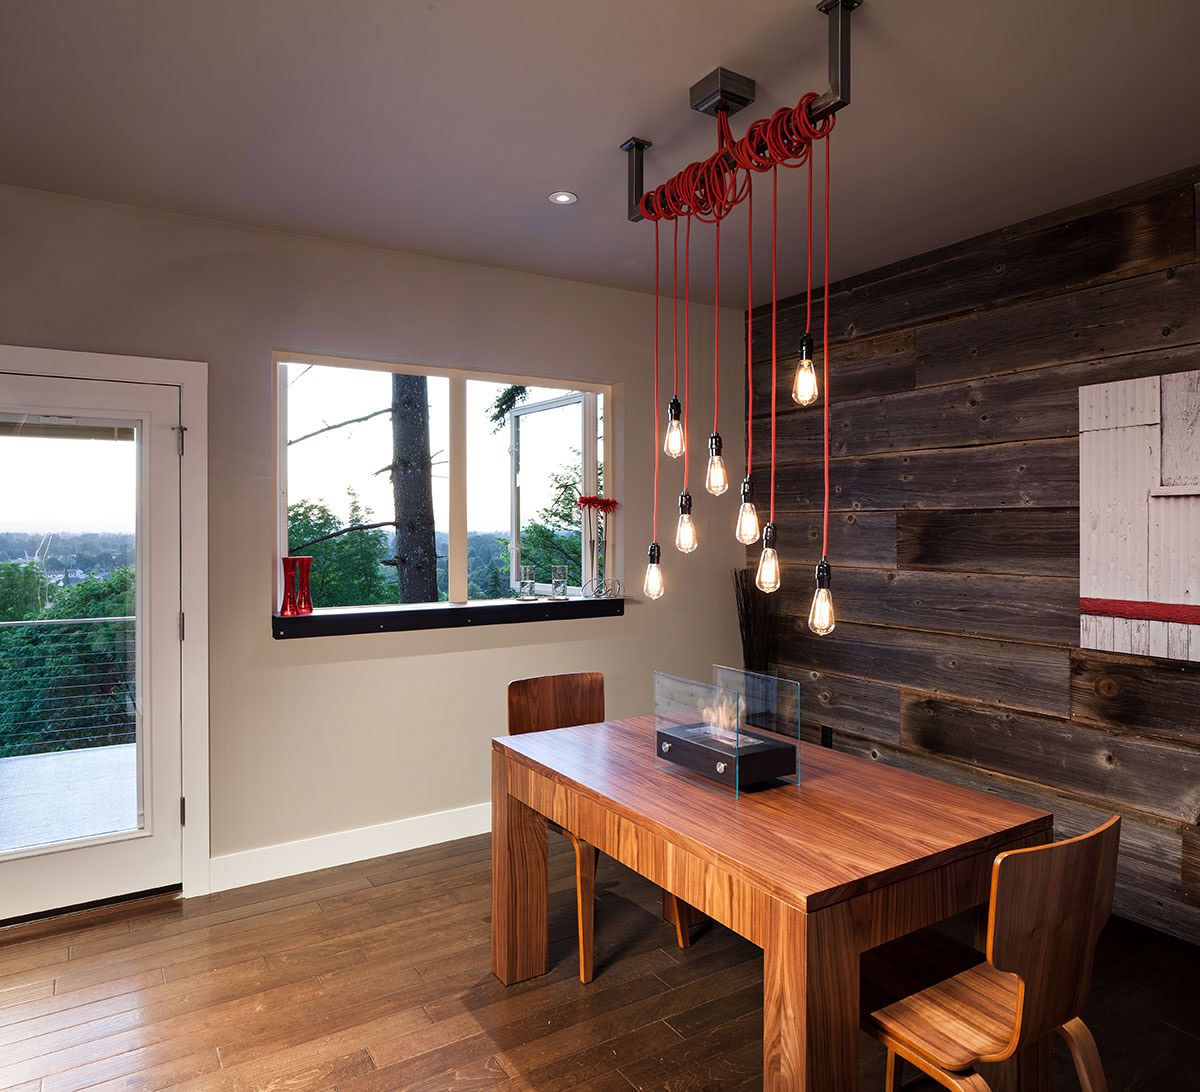 Dining Lighting Rustic Wall Modern Home In Eugene Oregon By Jordan Iverson Signature Homes